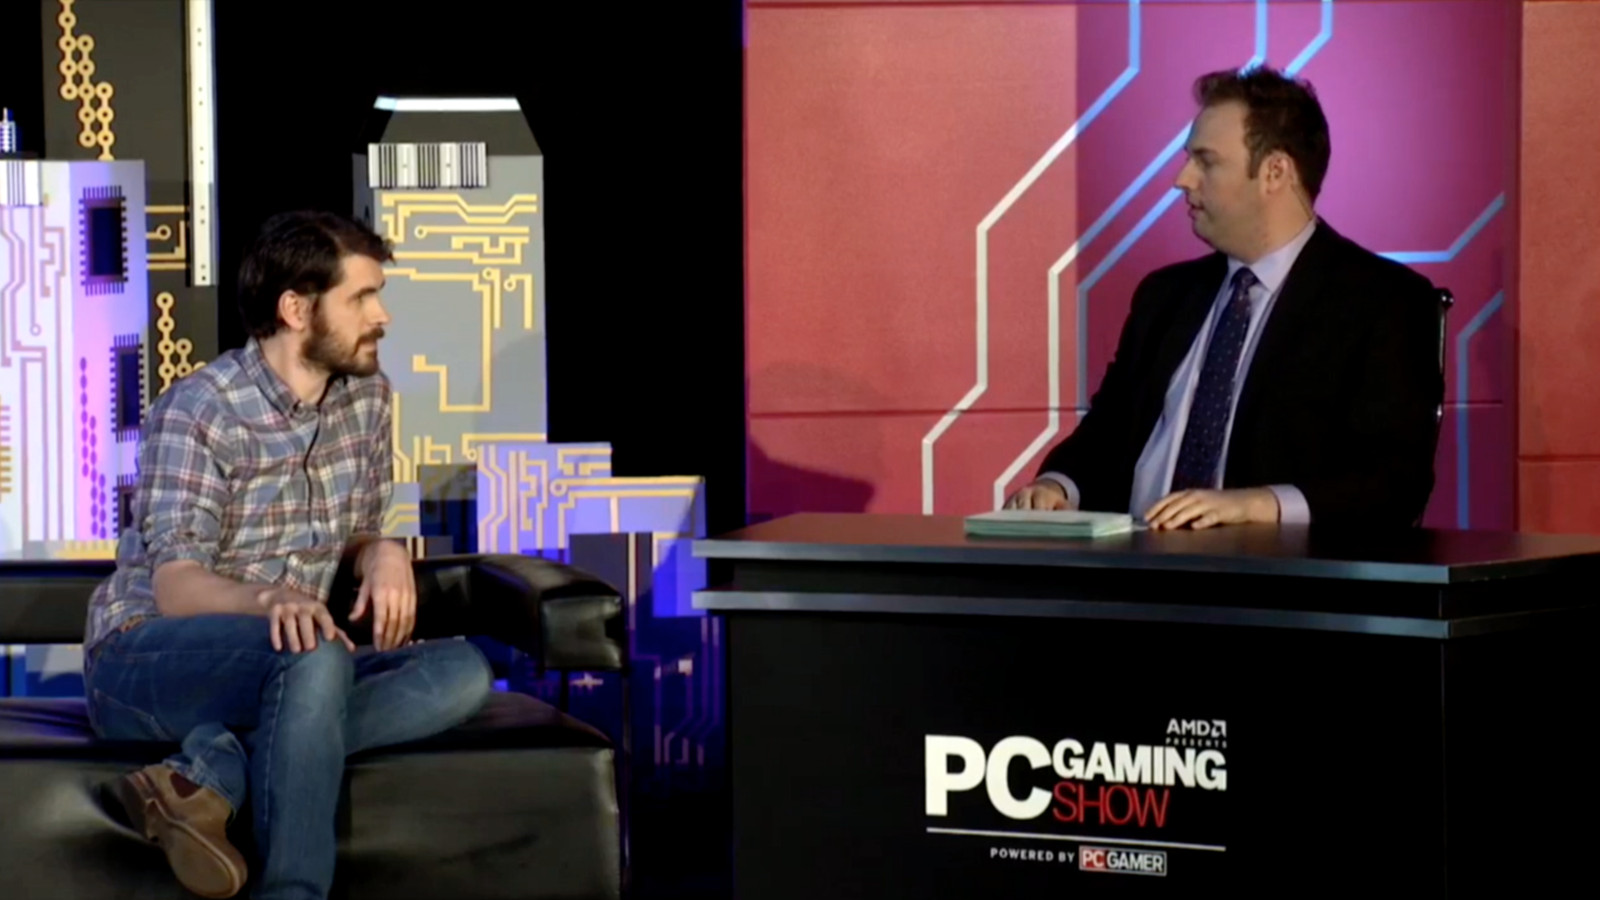 What to expect from E3's PC Gaming Show